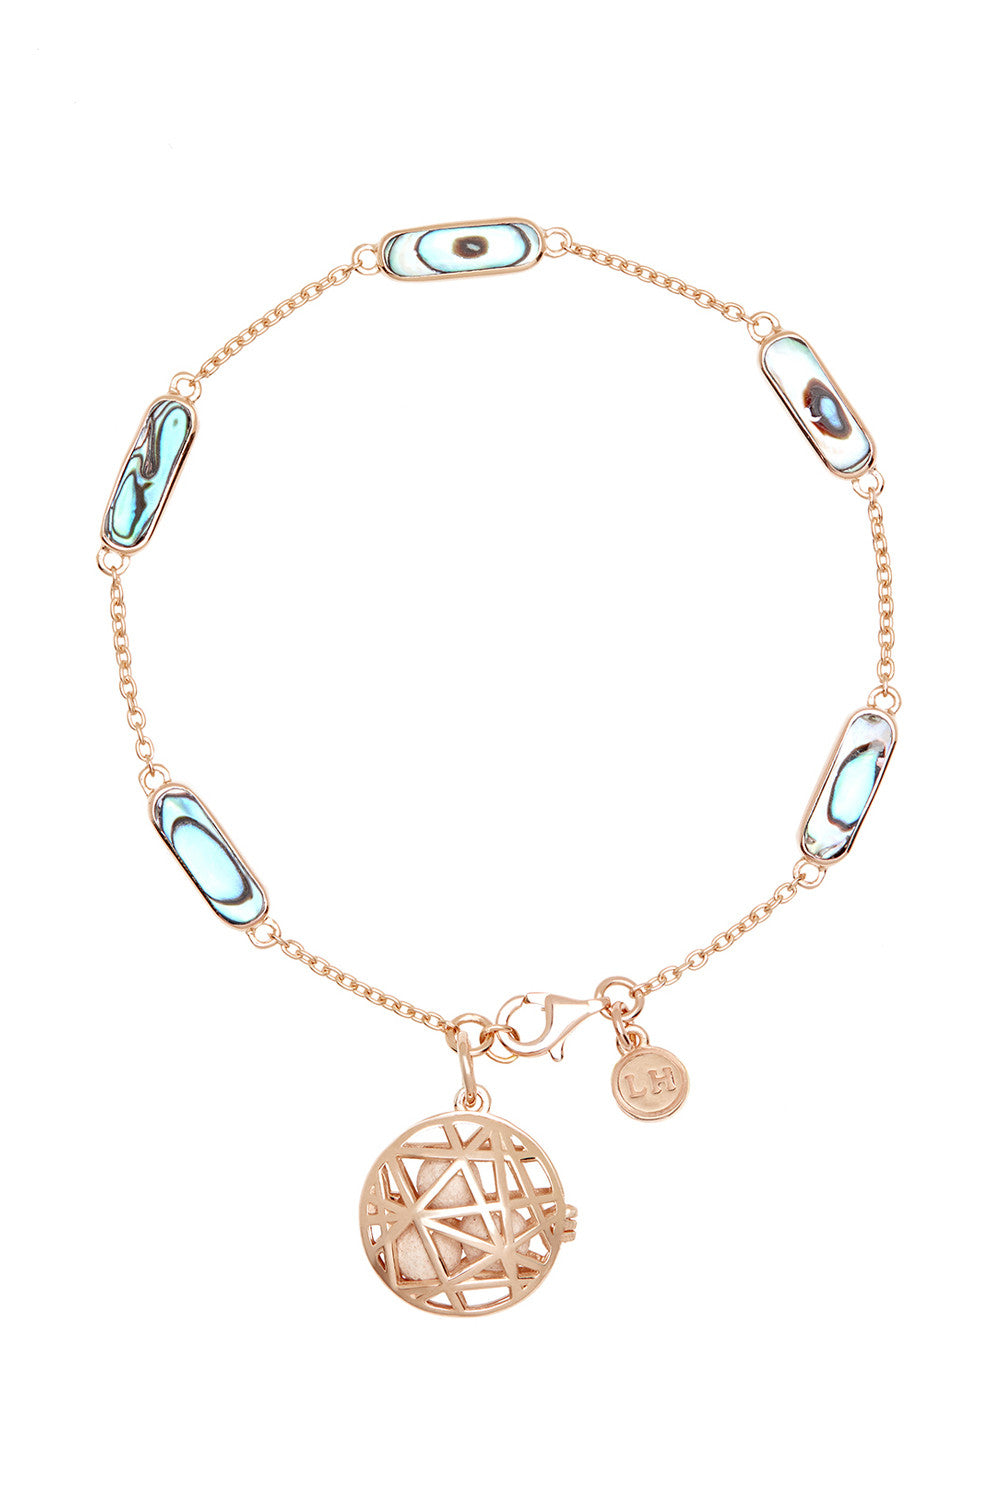 Nest Disc Chain Bracelet - Abalone & Rose Gold